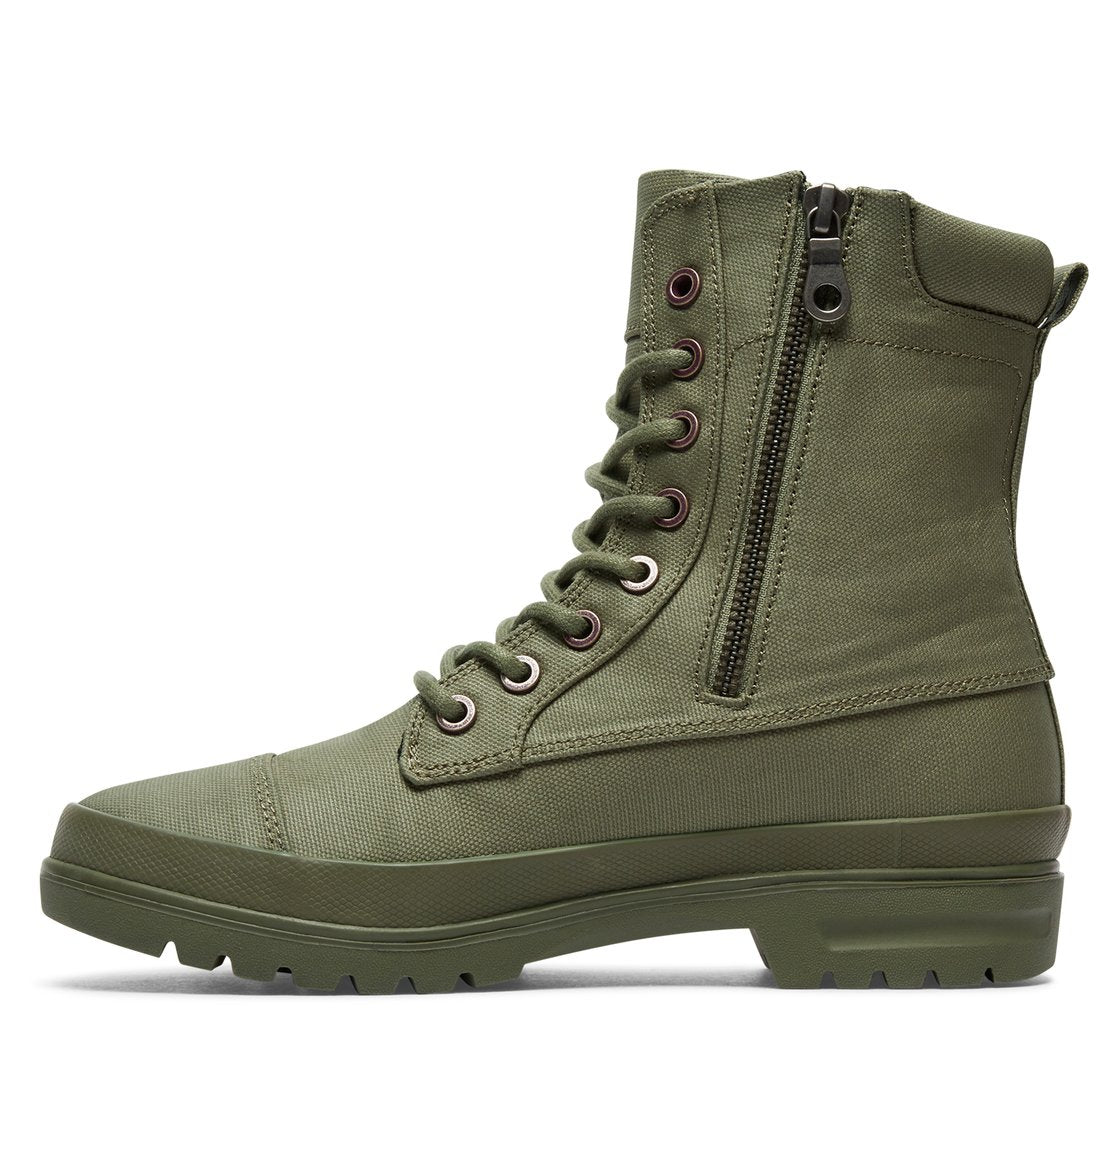 DC Ladies Amnesti TX Boots in Olive